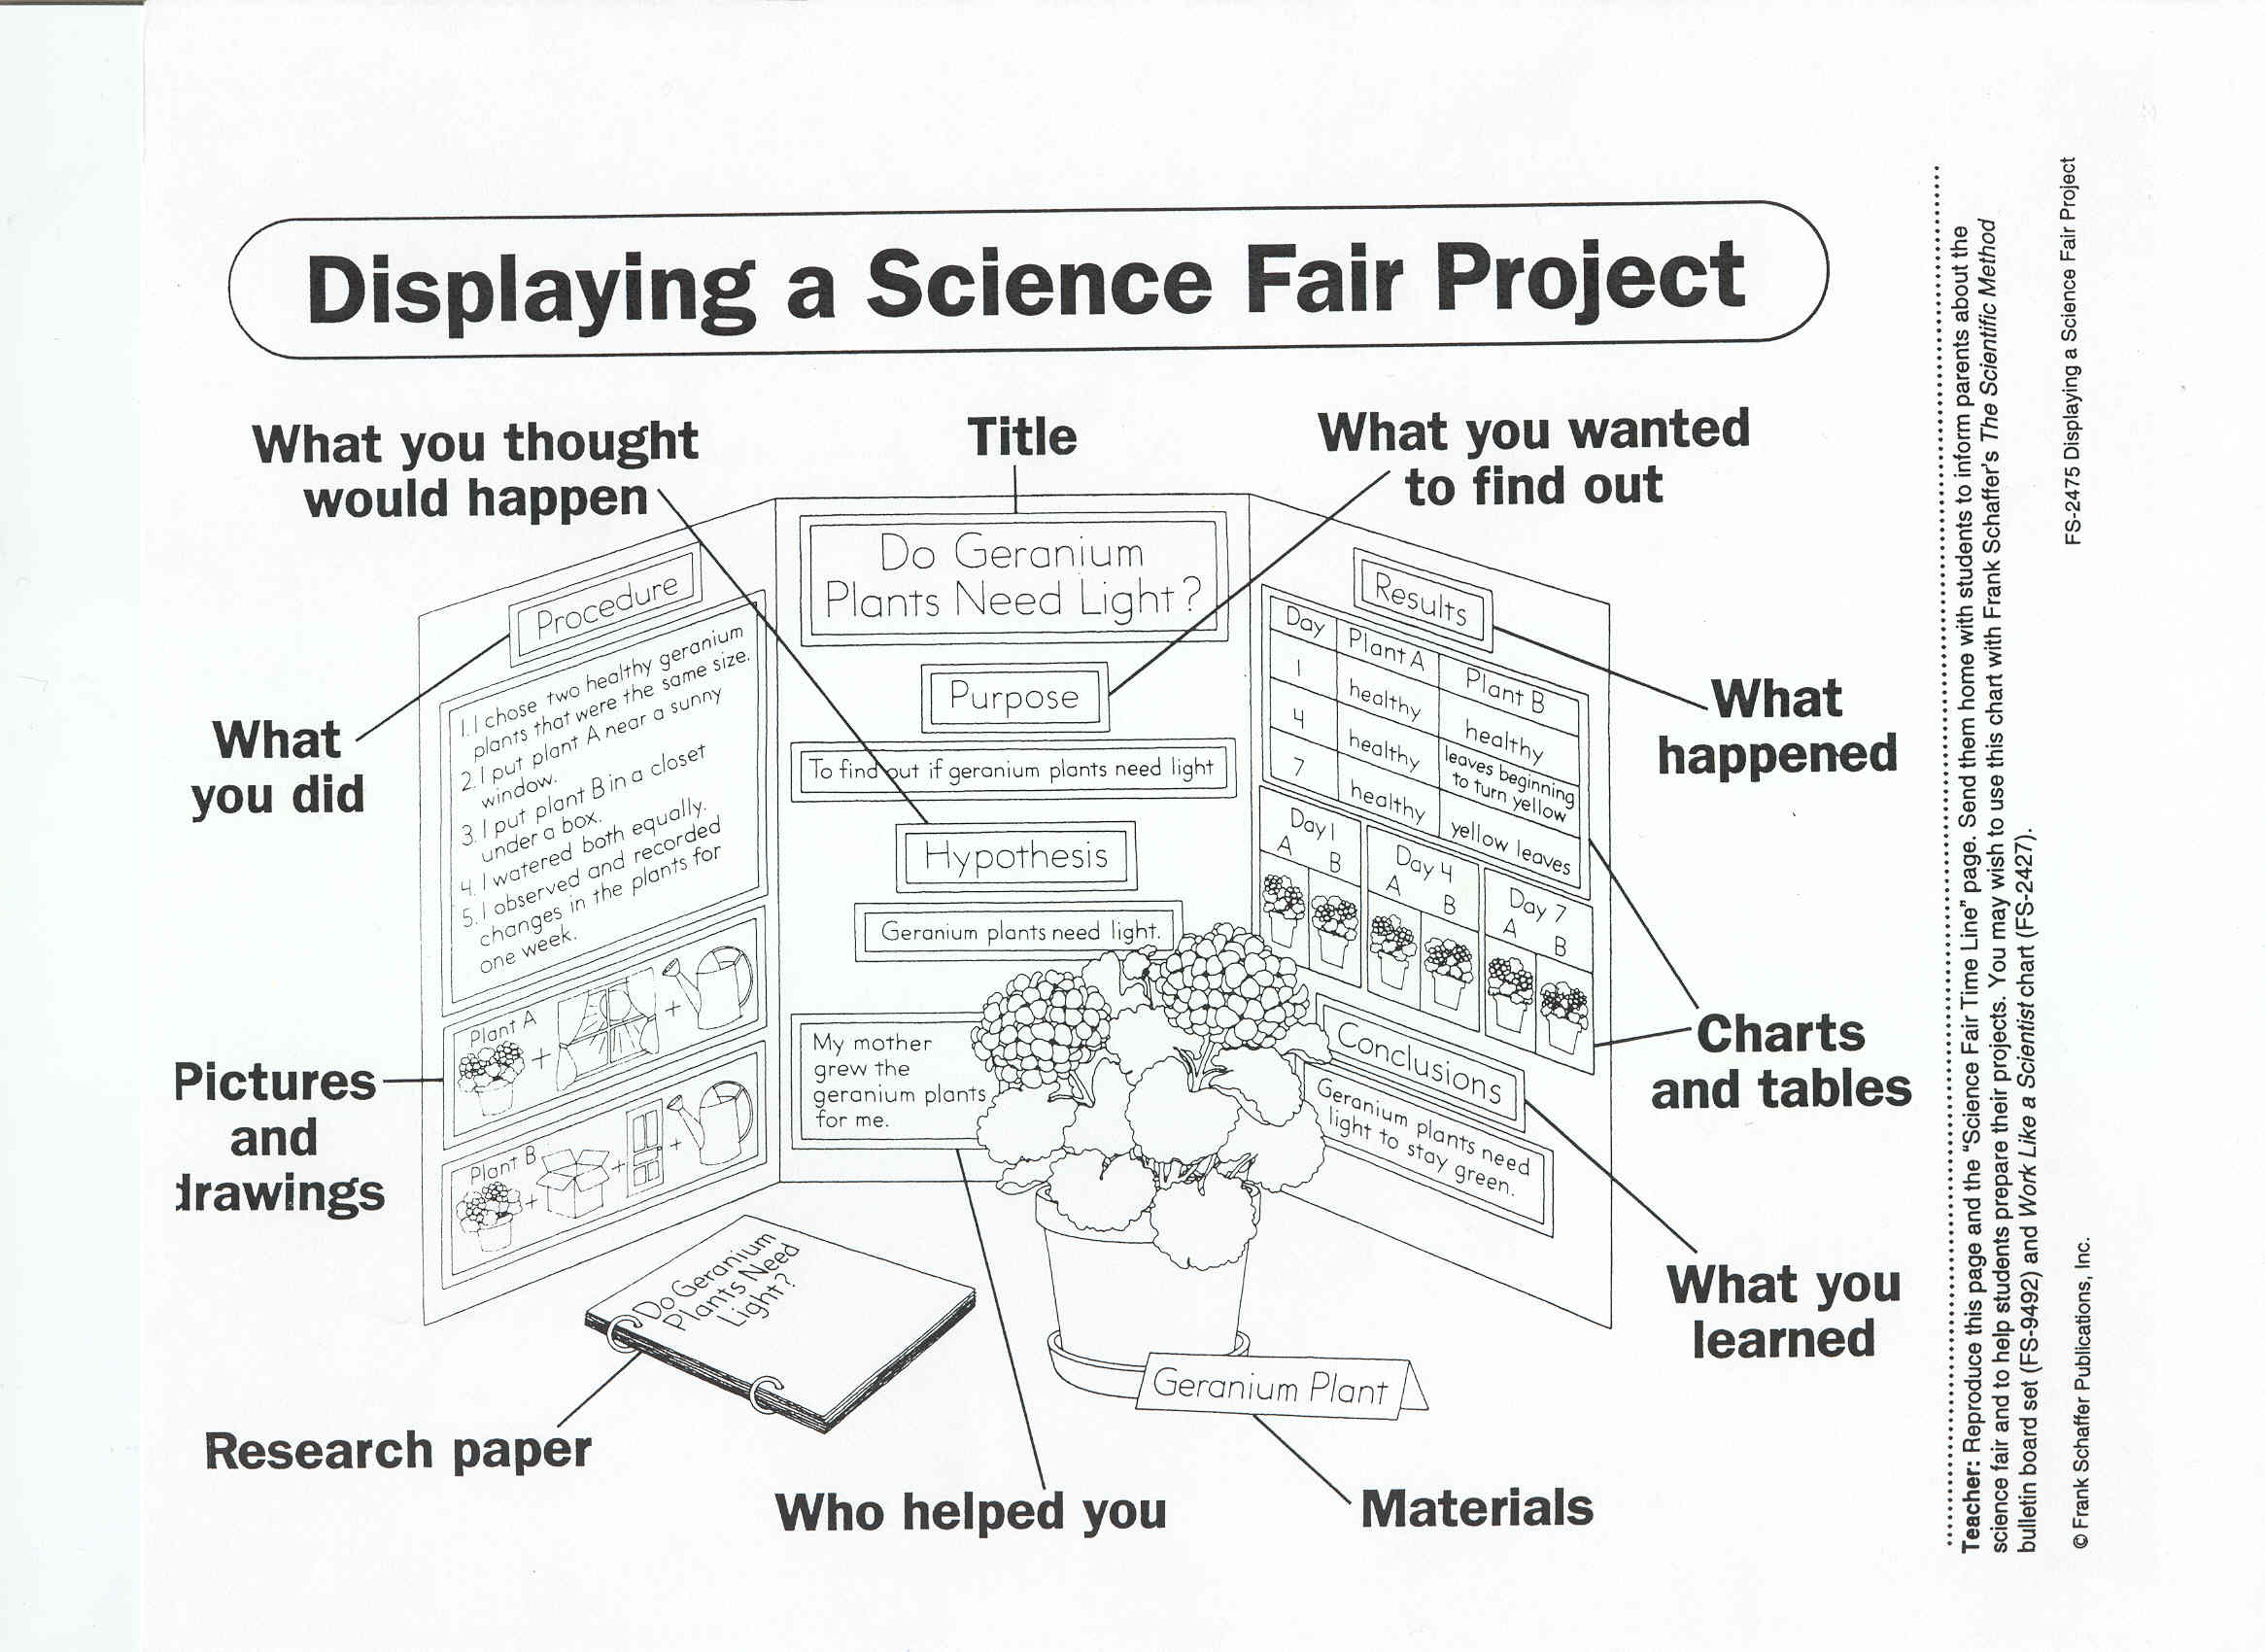 014 Best Ideas Of 4th Grade Science Project Research Paper On Fair Mrlman S Class Middle School Frightening Template Full